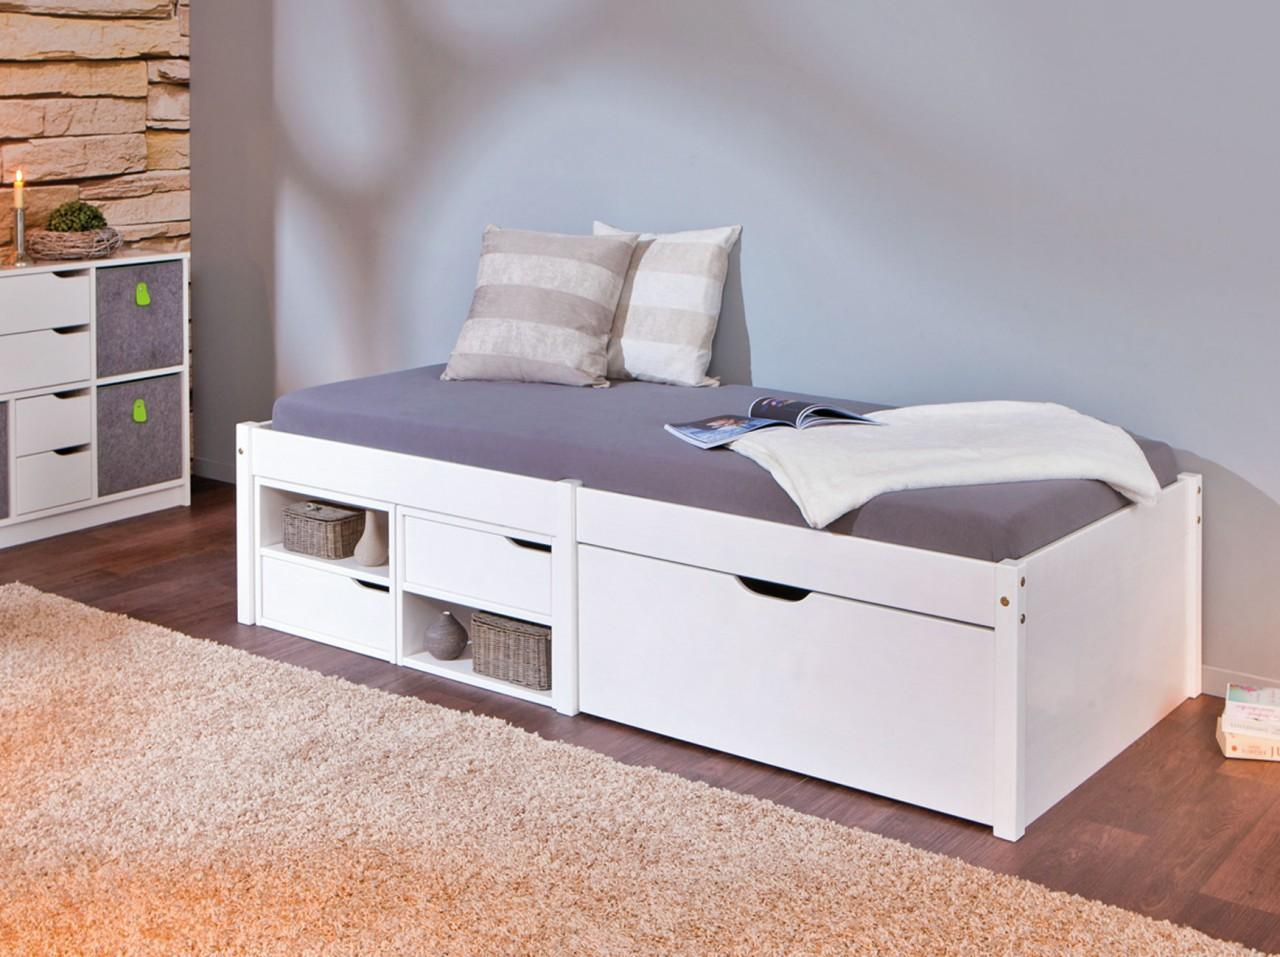 kinderbett varum 90 x 200 kiefer massiv wei lackiert mit schubladen. Black Bedroom Furniture Sets. Home Design Ideas